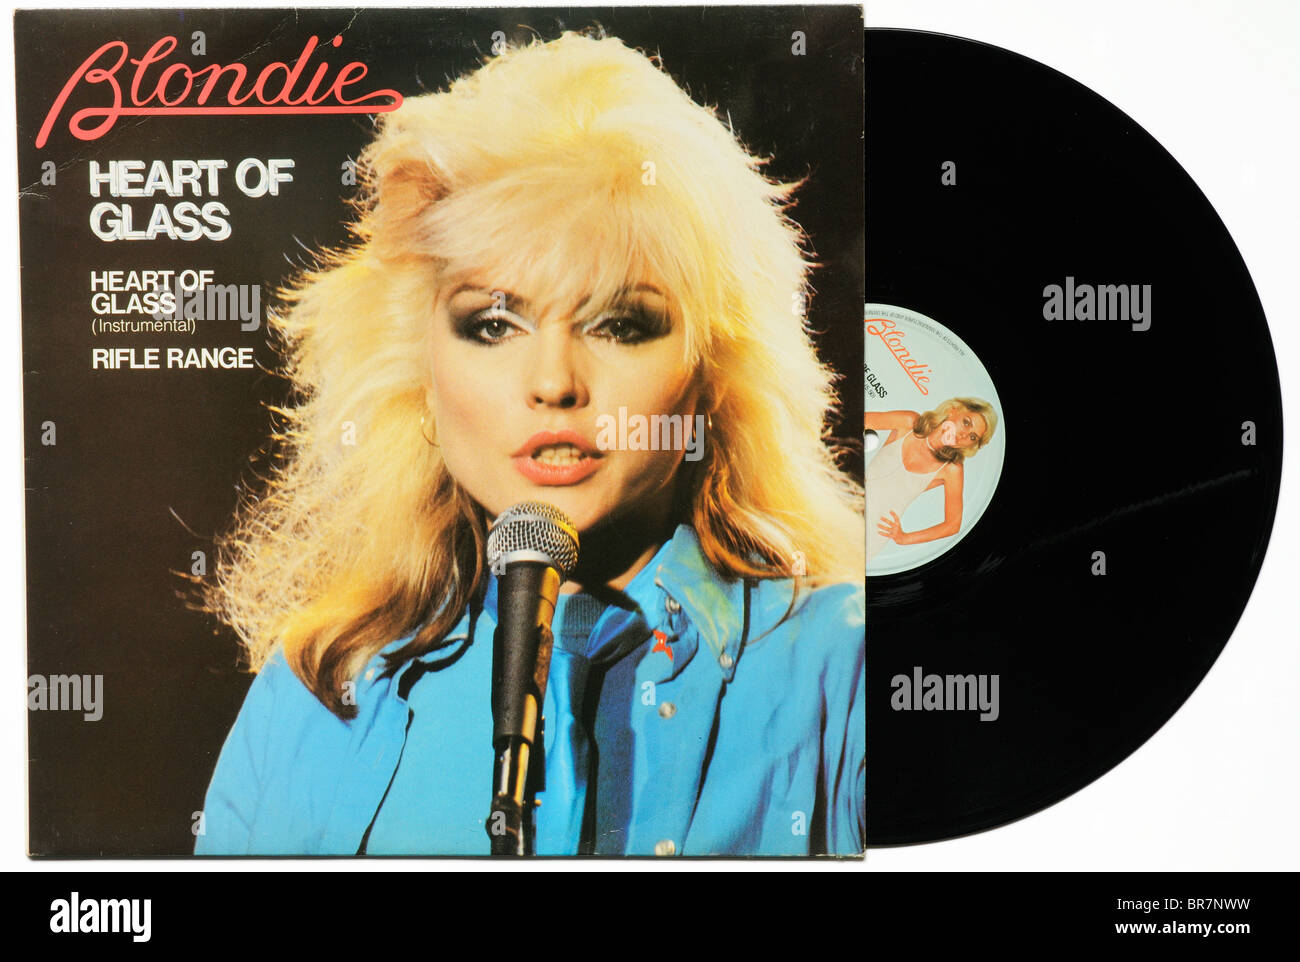 Blondie Heart of Glass single - Stock Image